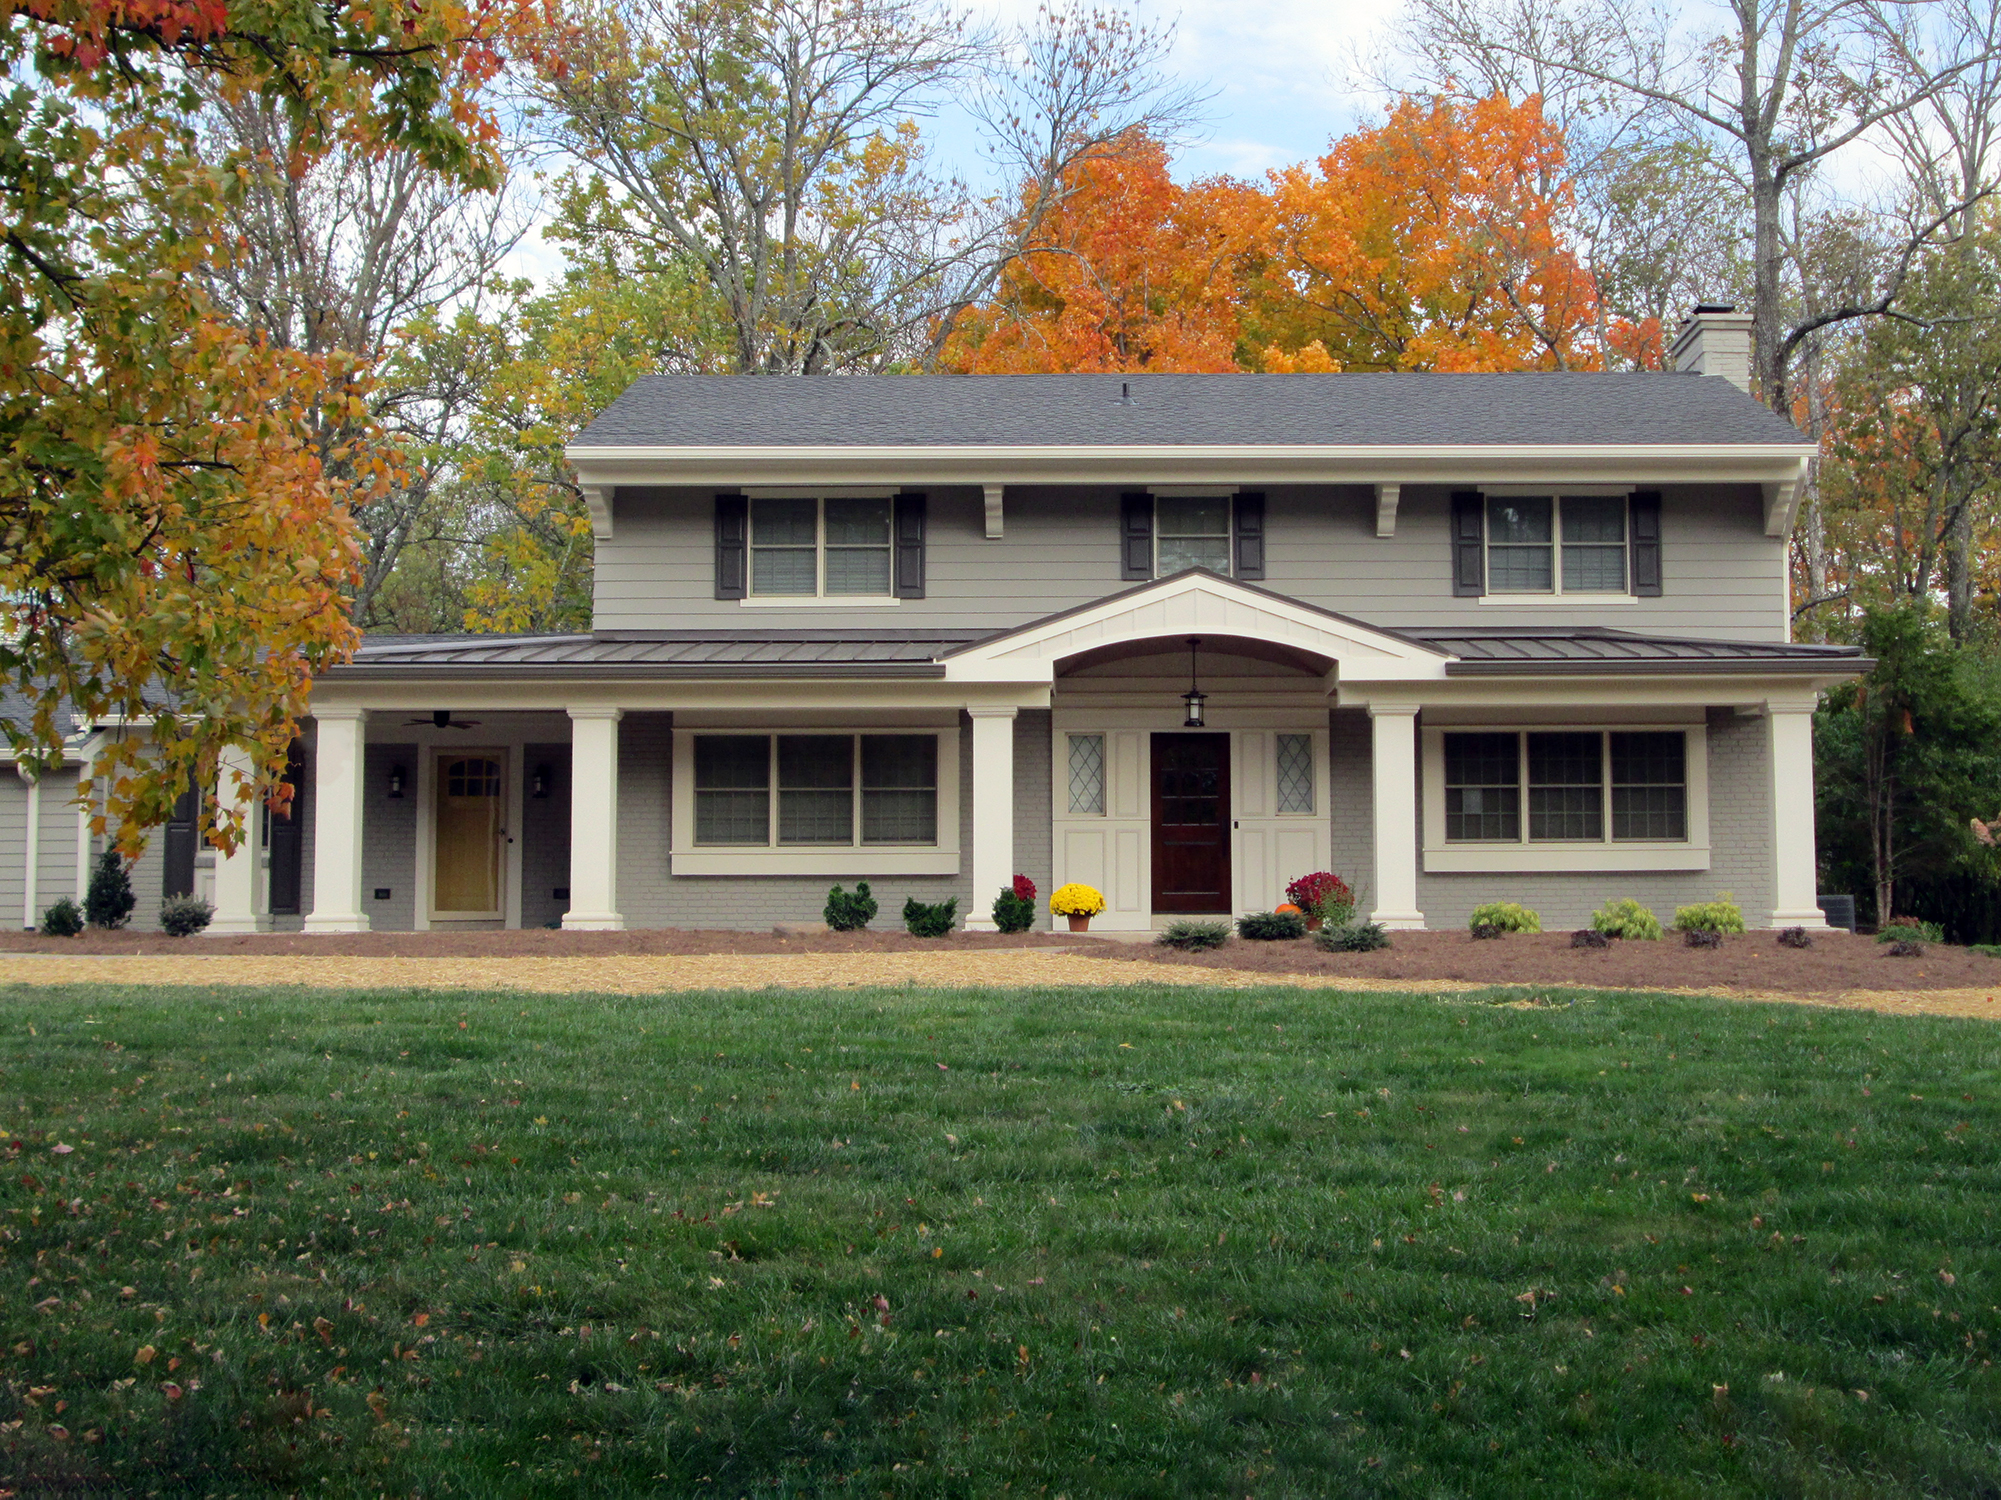 covered front porch Indian Hill residential architecture Tom Wilcox Cincinnati